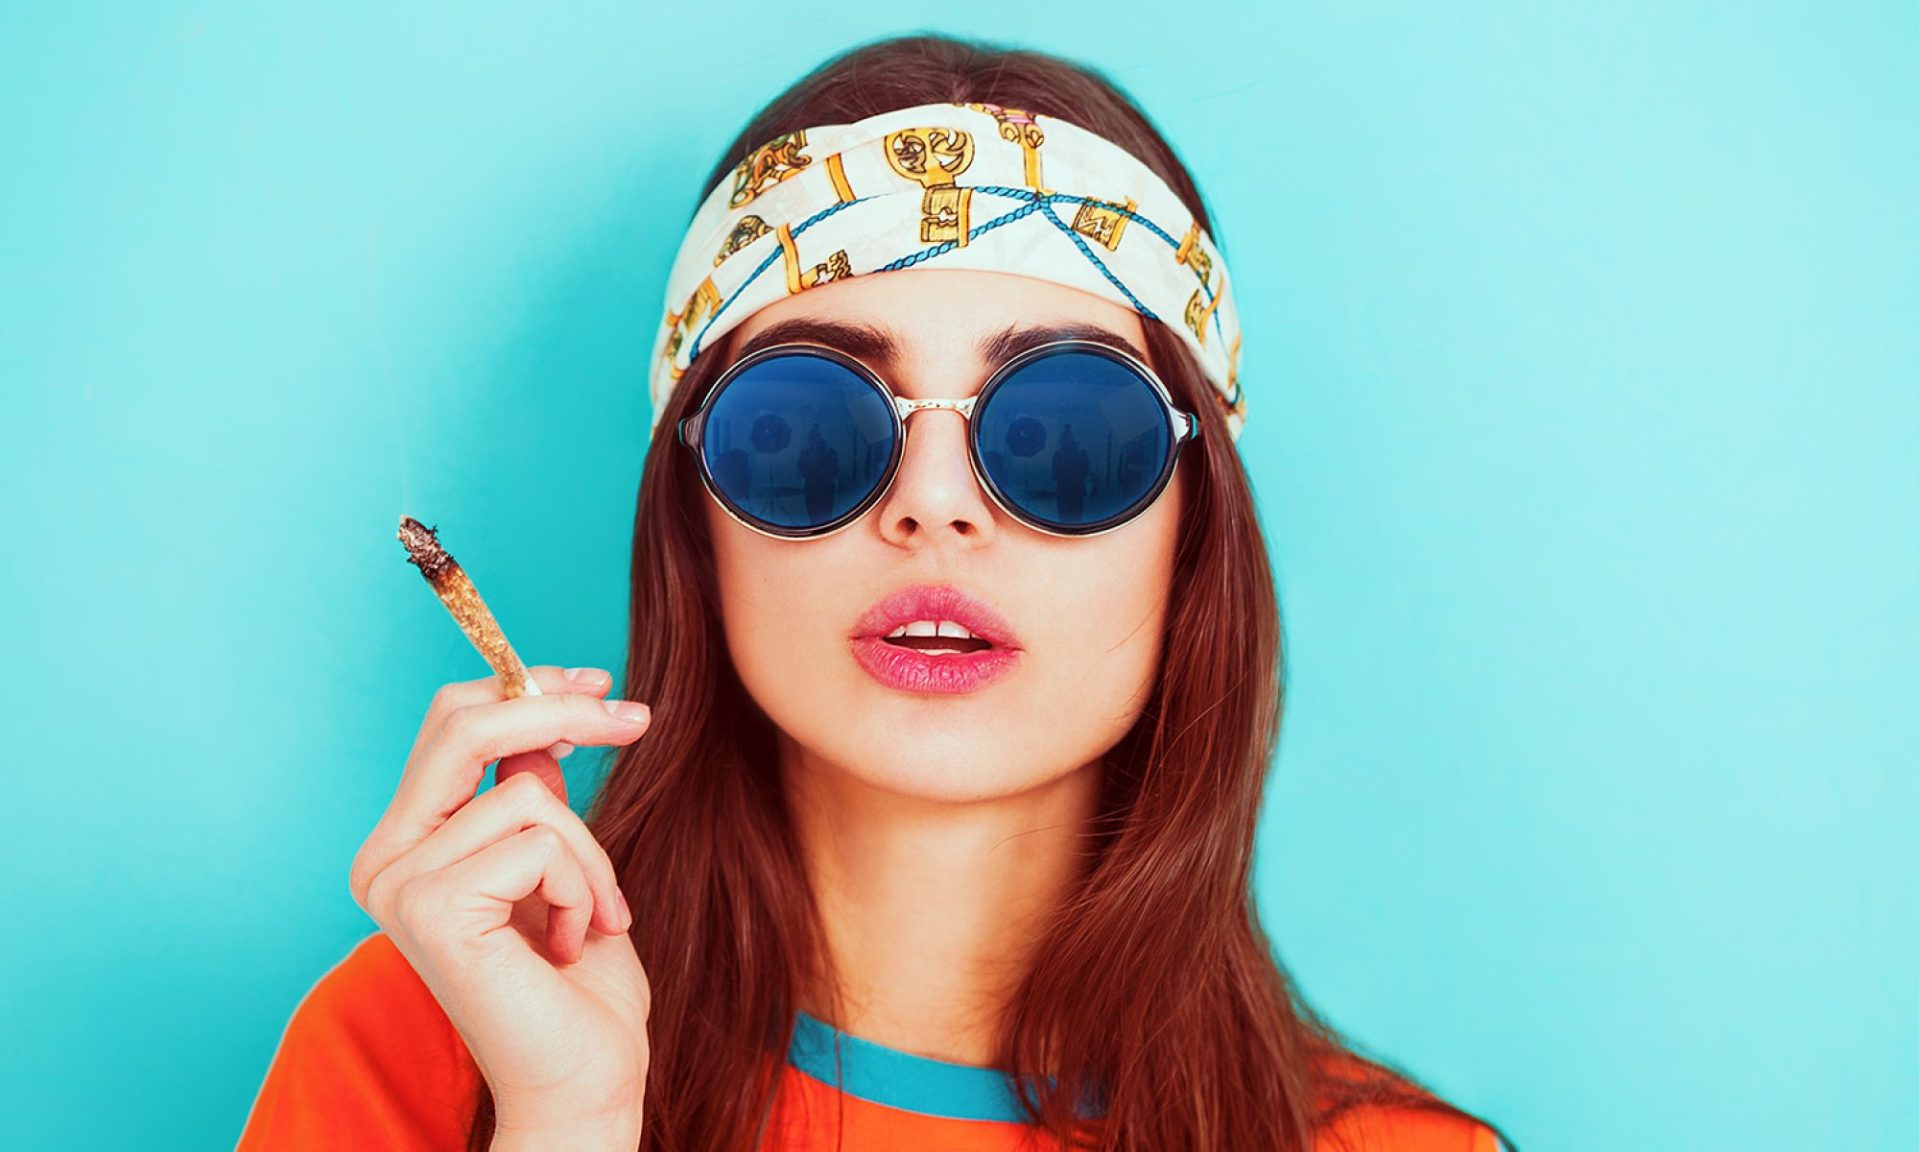 HeyHelloHigh - Lifted Lifestyle for the Modern Stoner Woman - Contact Us